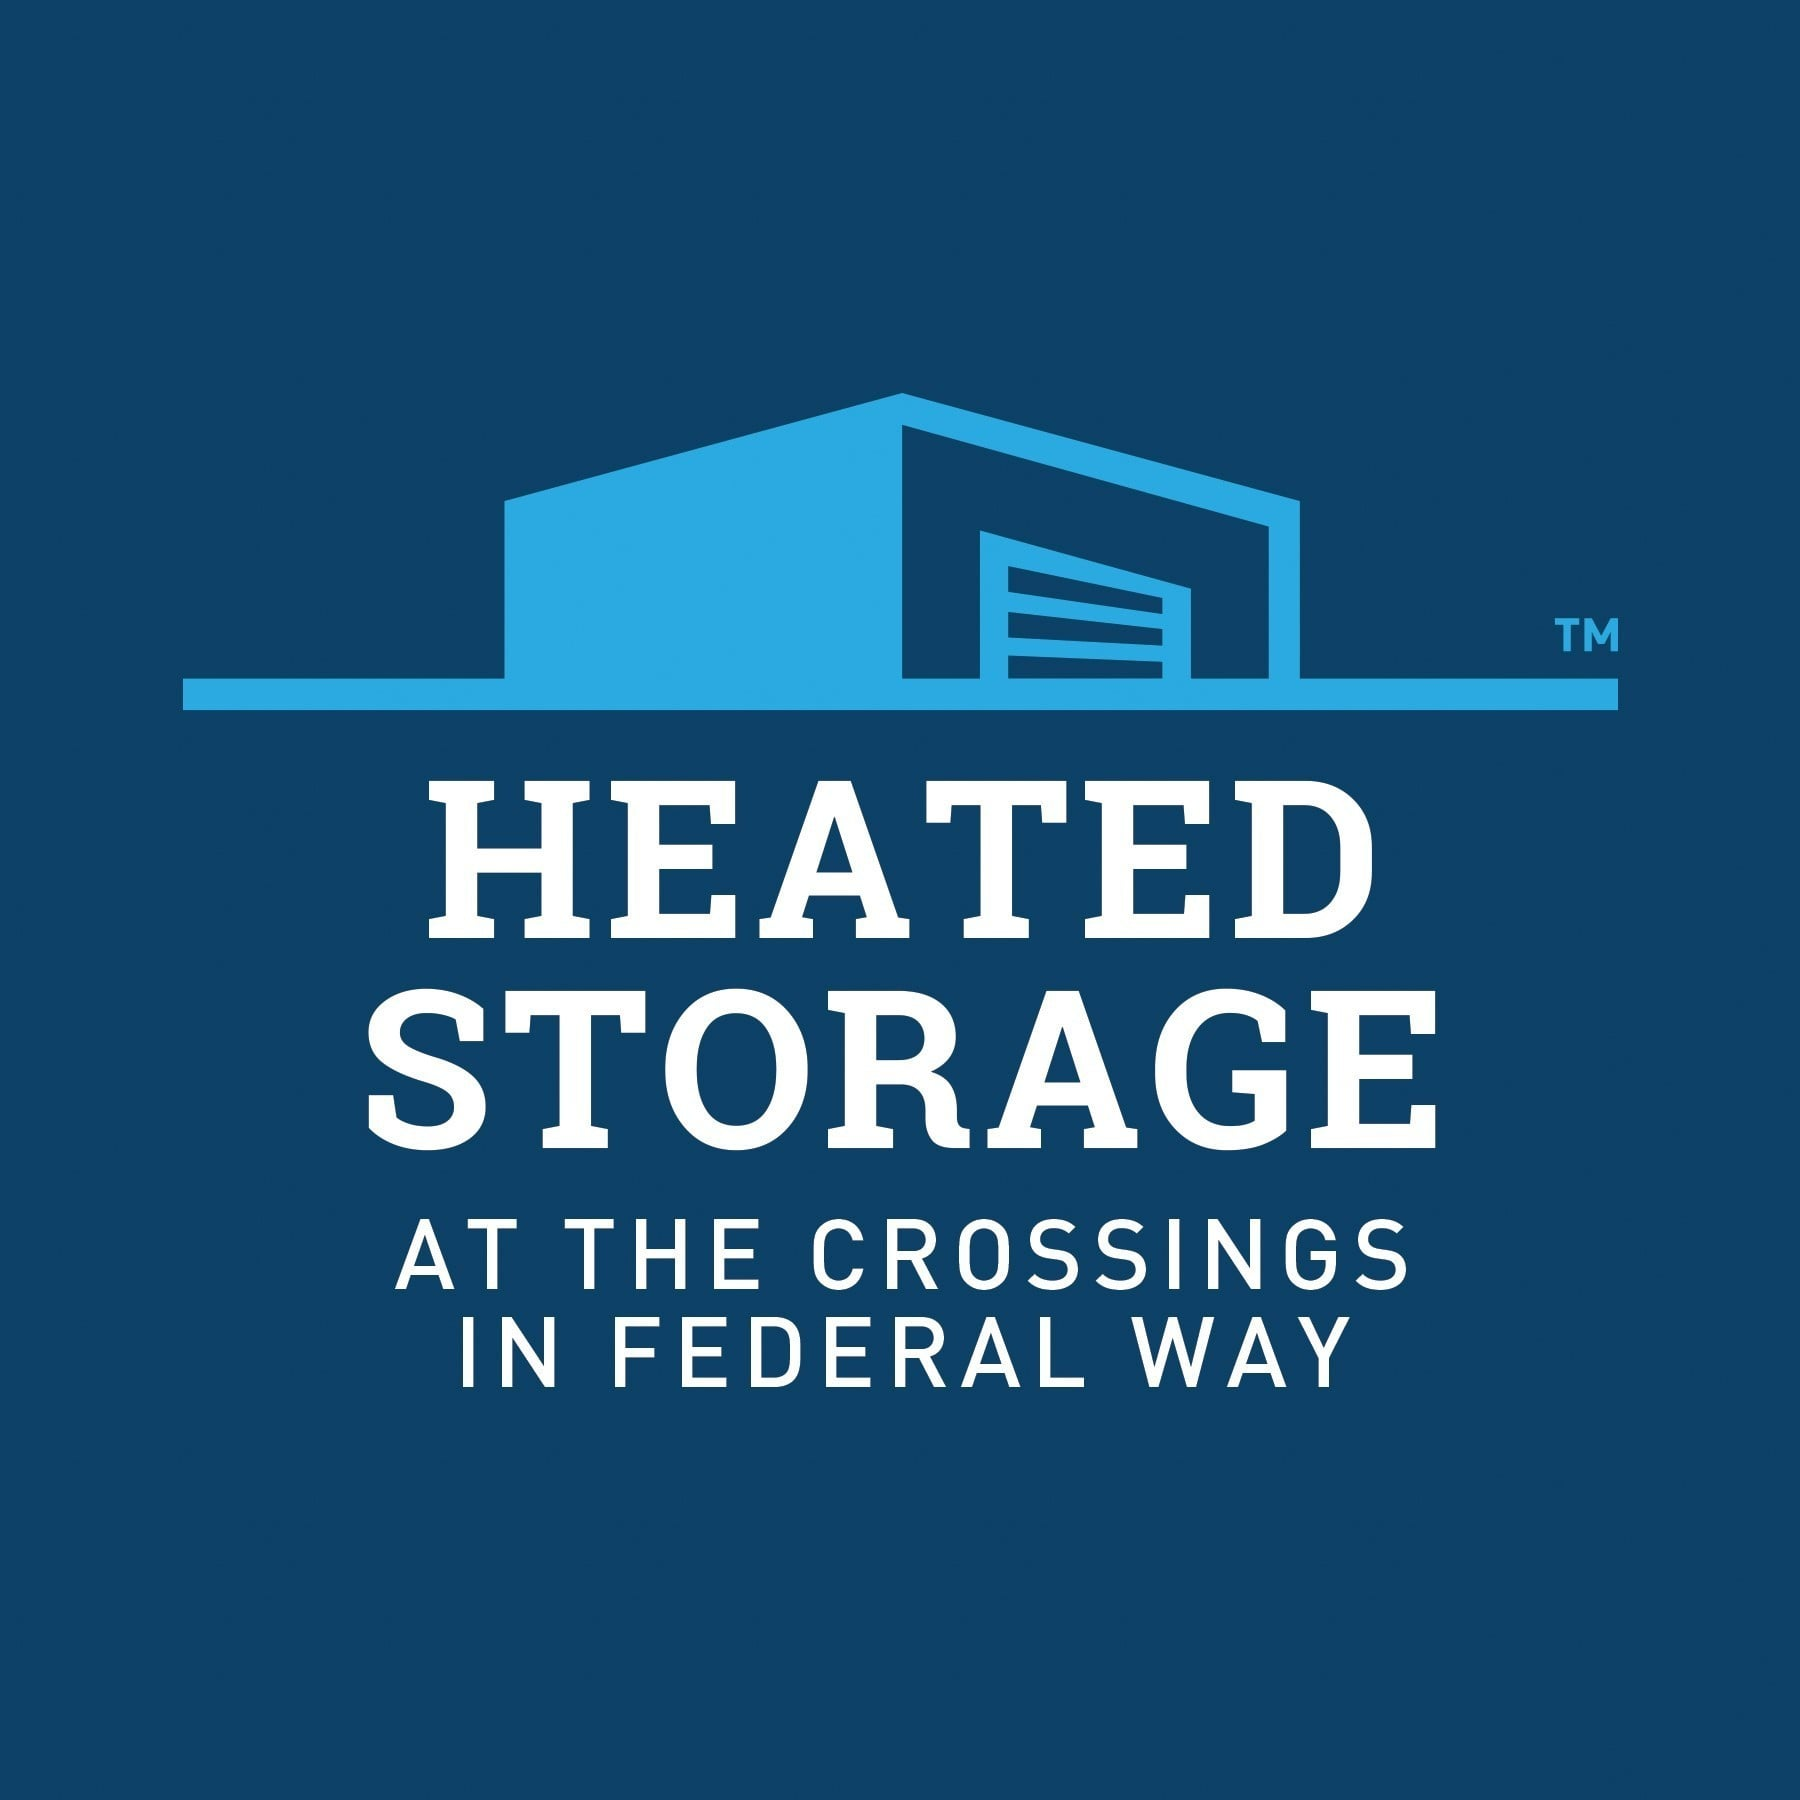 Heated Storage at the Crossings in Federal Way